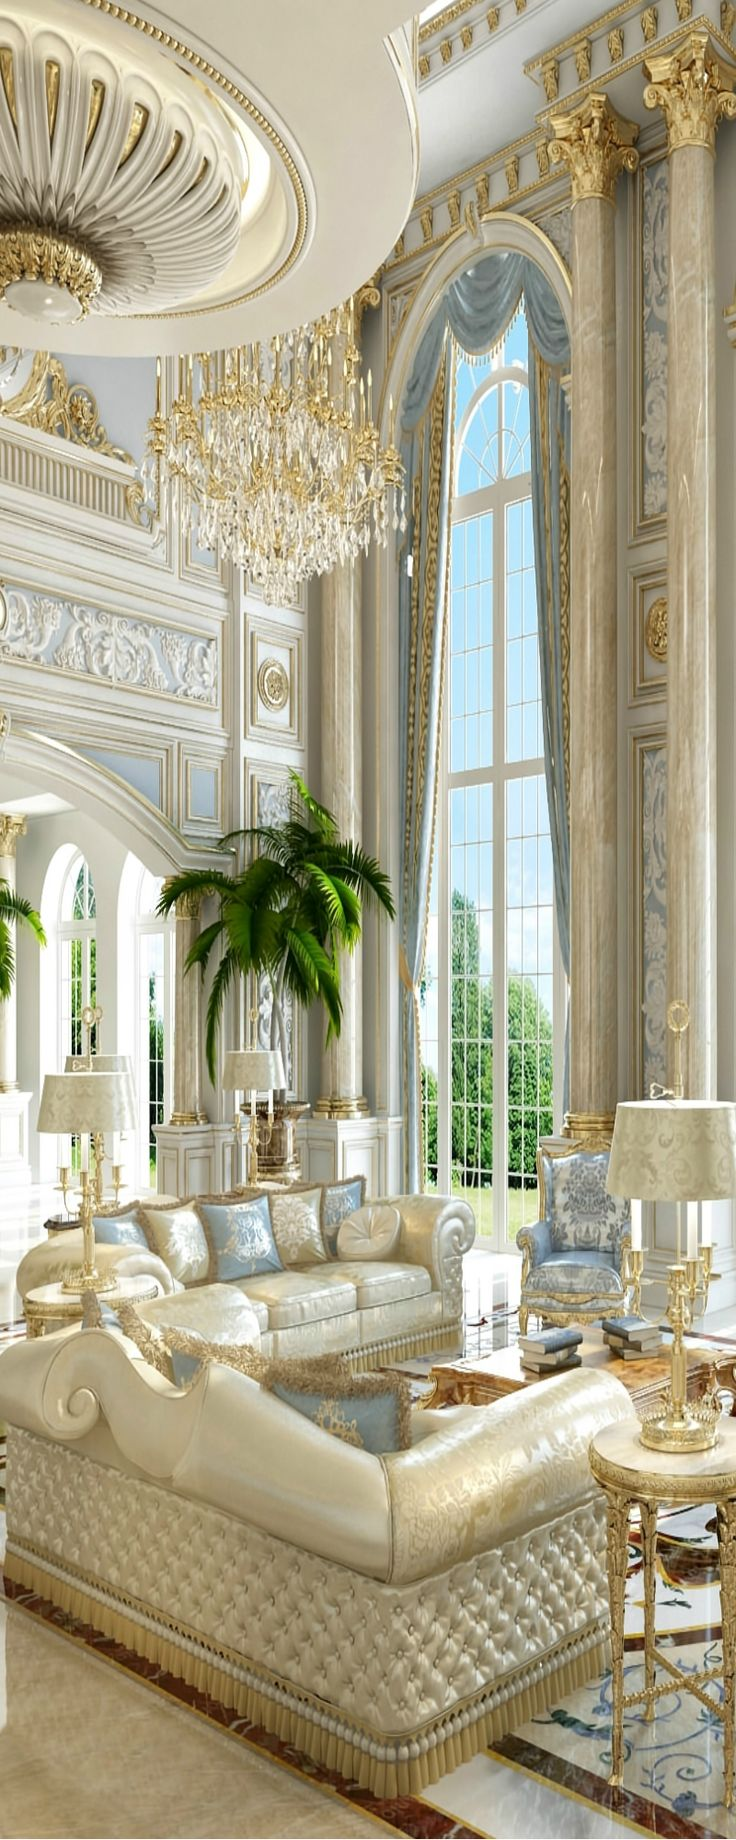 Best luxury designer ideas dream wallpaper interior home design luxury for style pc hd